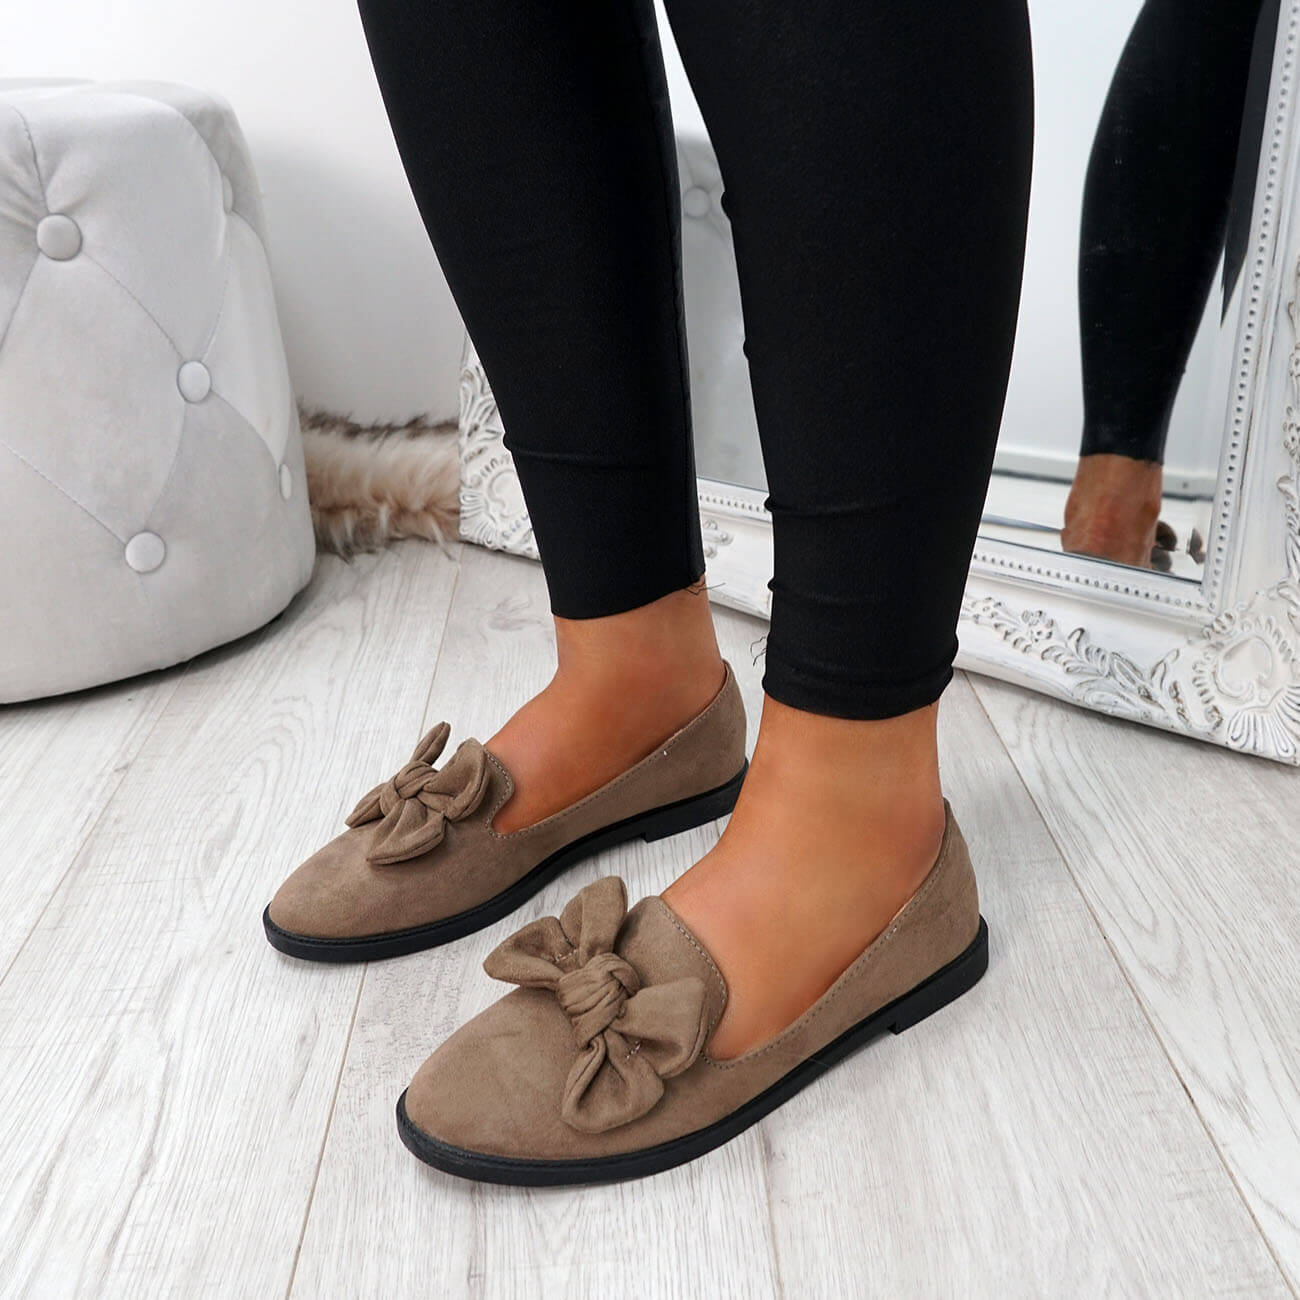 WOMENS-LADIES-BOW-BALLERINA-PUMPS-FLATS-SLIP-ON-BALLET-CASUAL-WORK-SHOES-SIZE thumbnail 28